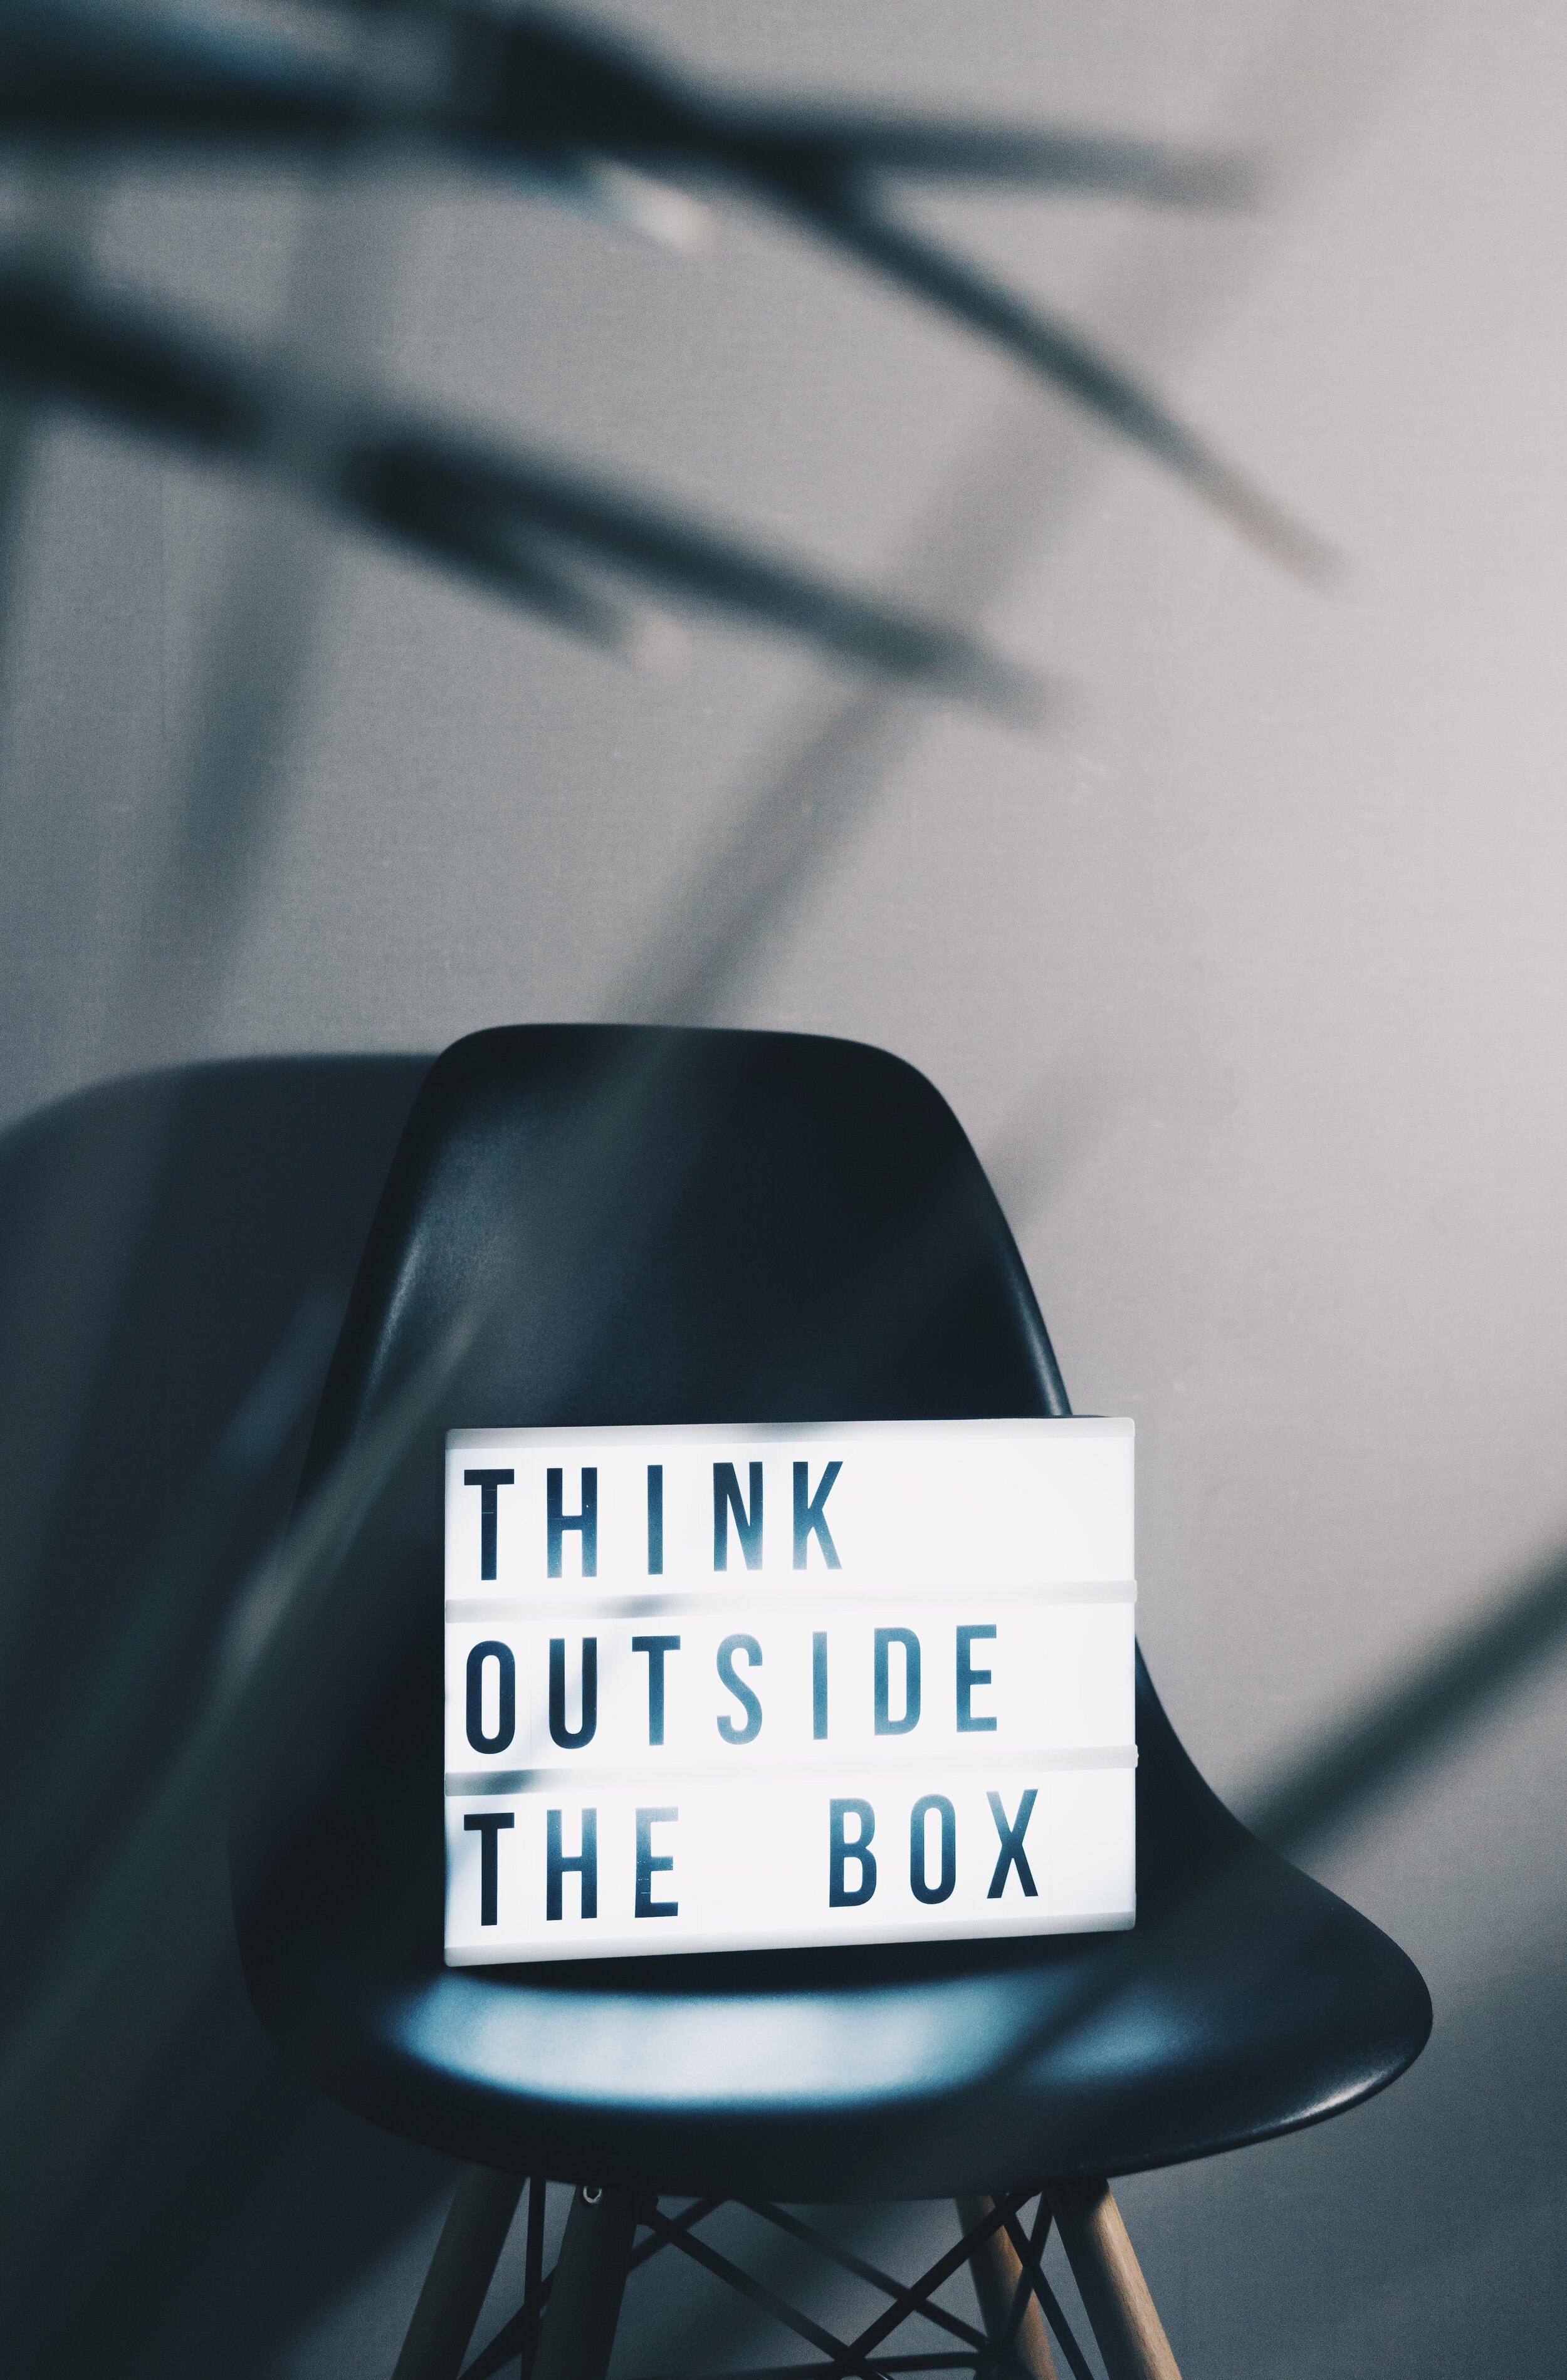 Think outside of the box.jpg